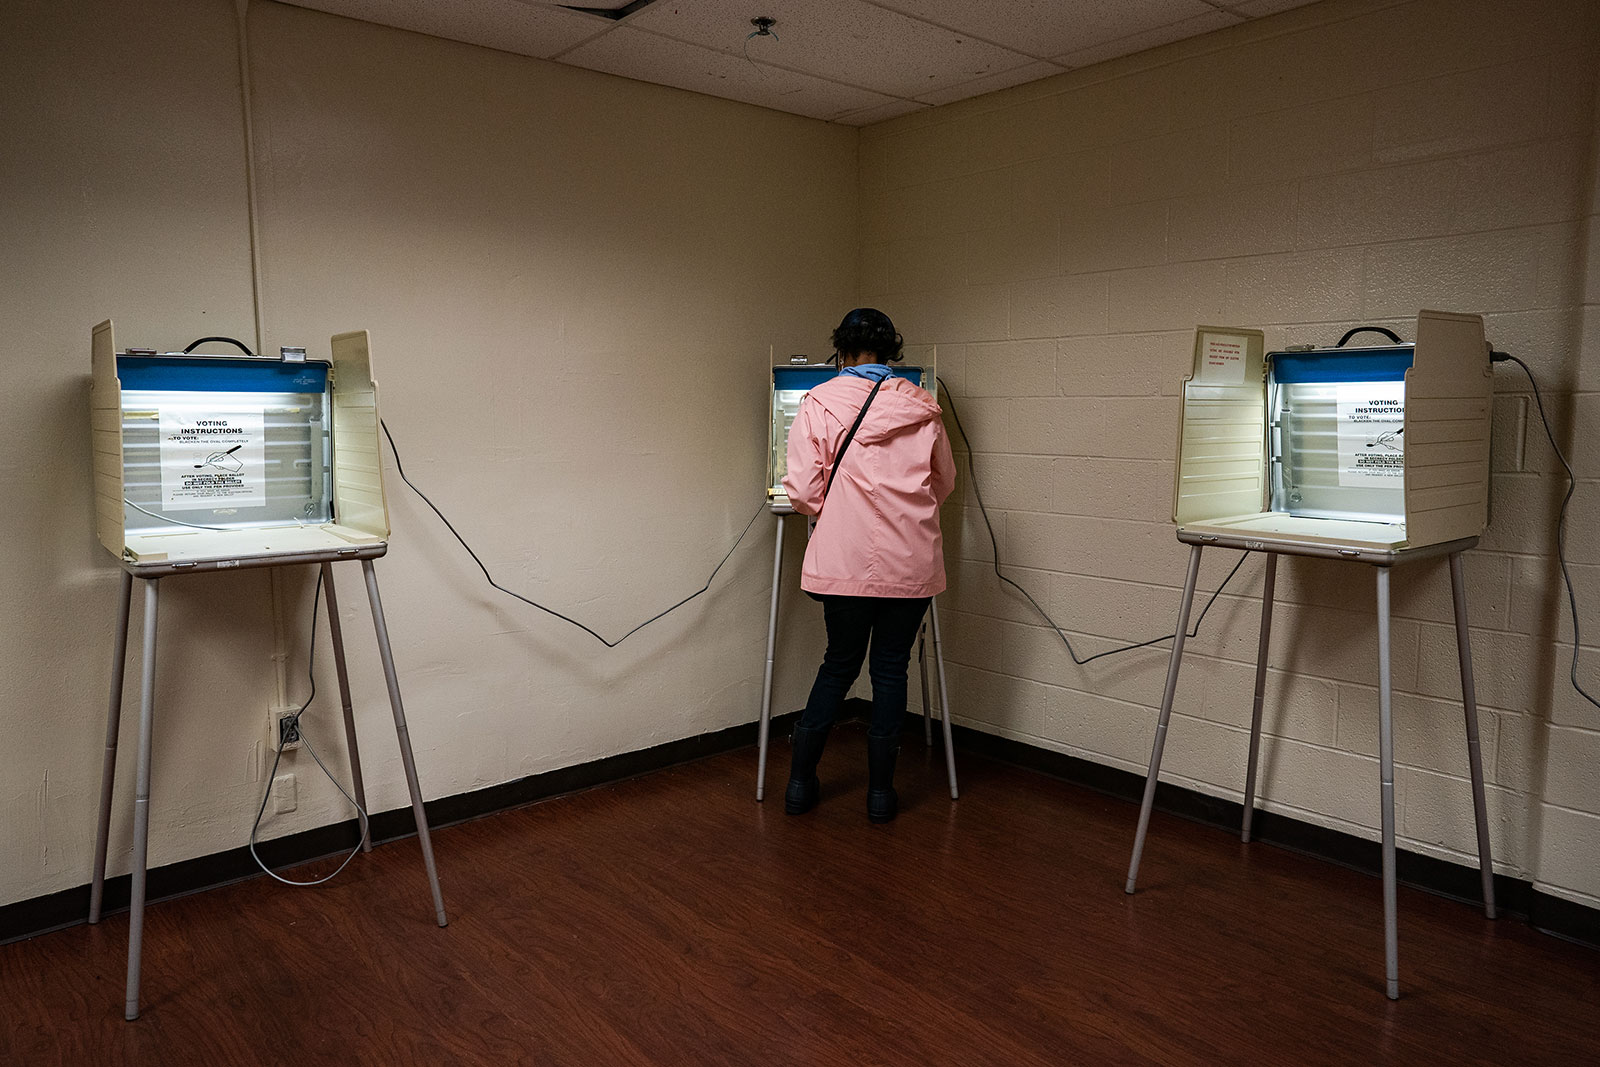 A person votes in Detroit, Michigan, on October 15.